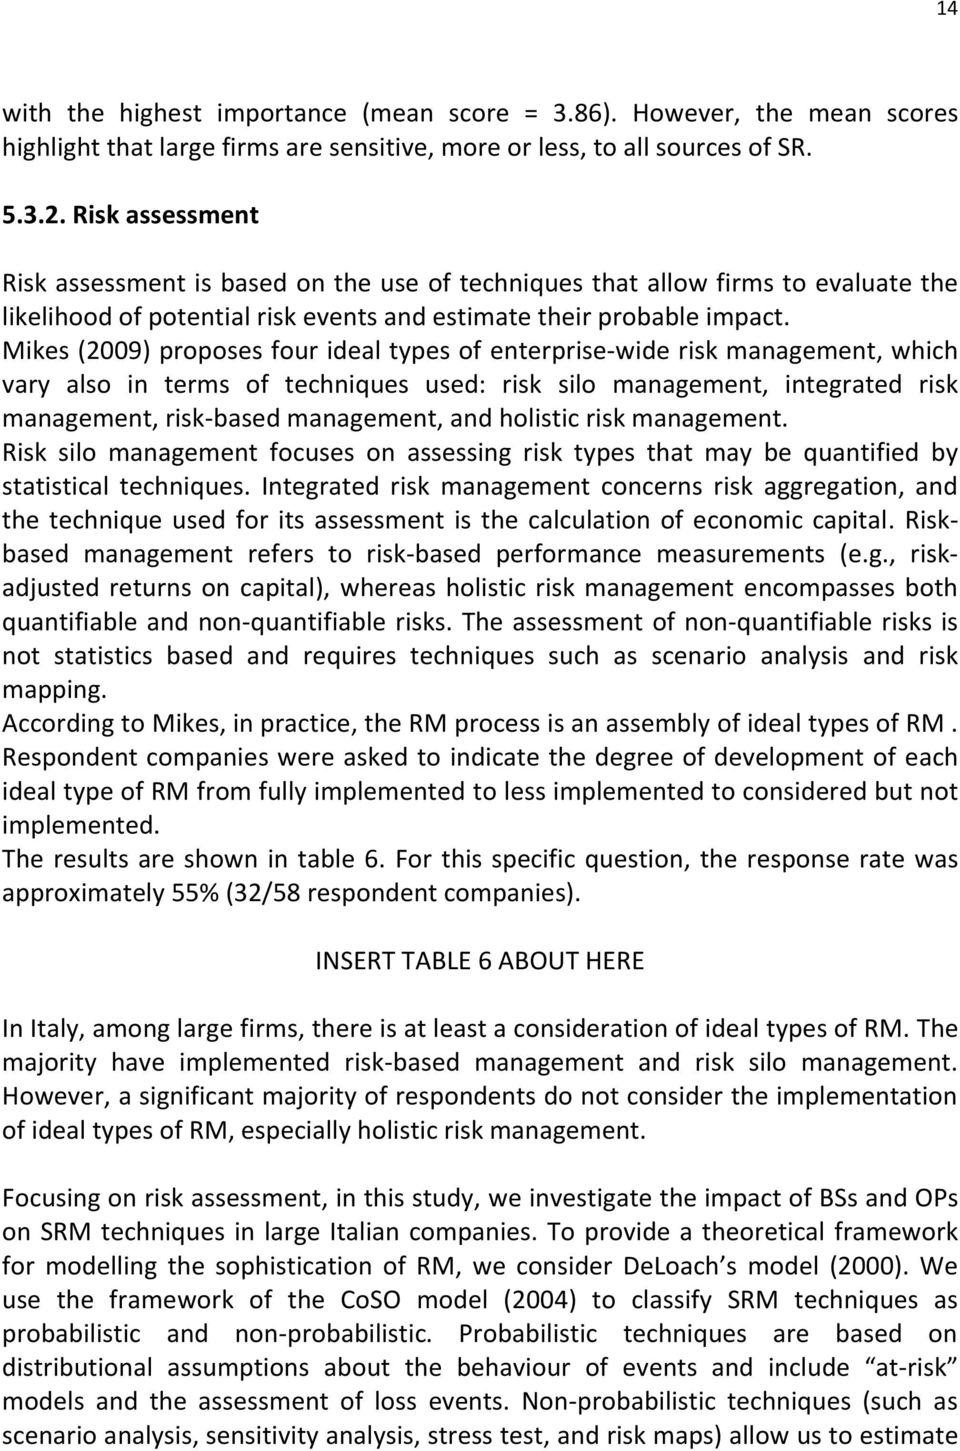 Mikes (2009) proposes four ideal types of enterprise-wide risk management, which vary also in terms of techniques used: risk silo management, integrated risk management, risk-based management, and